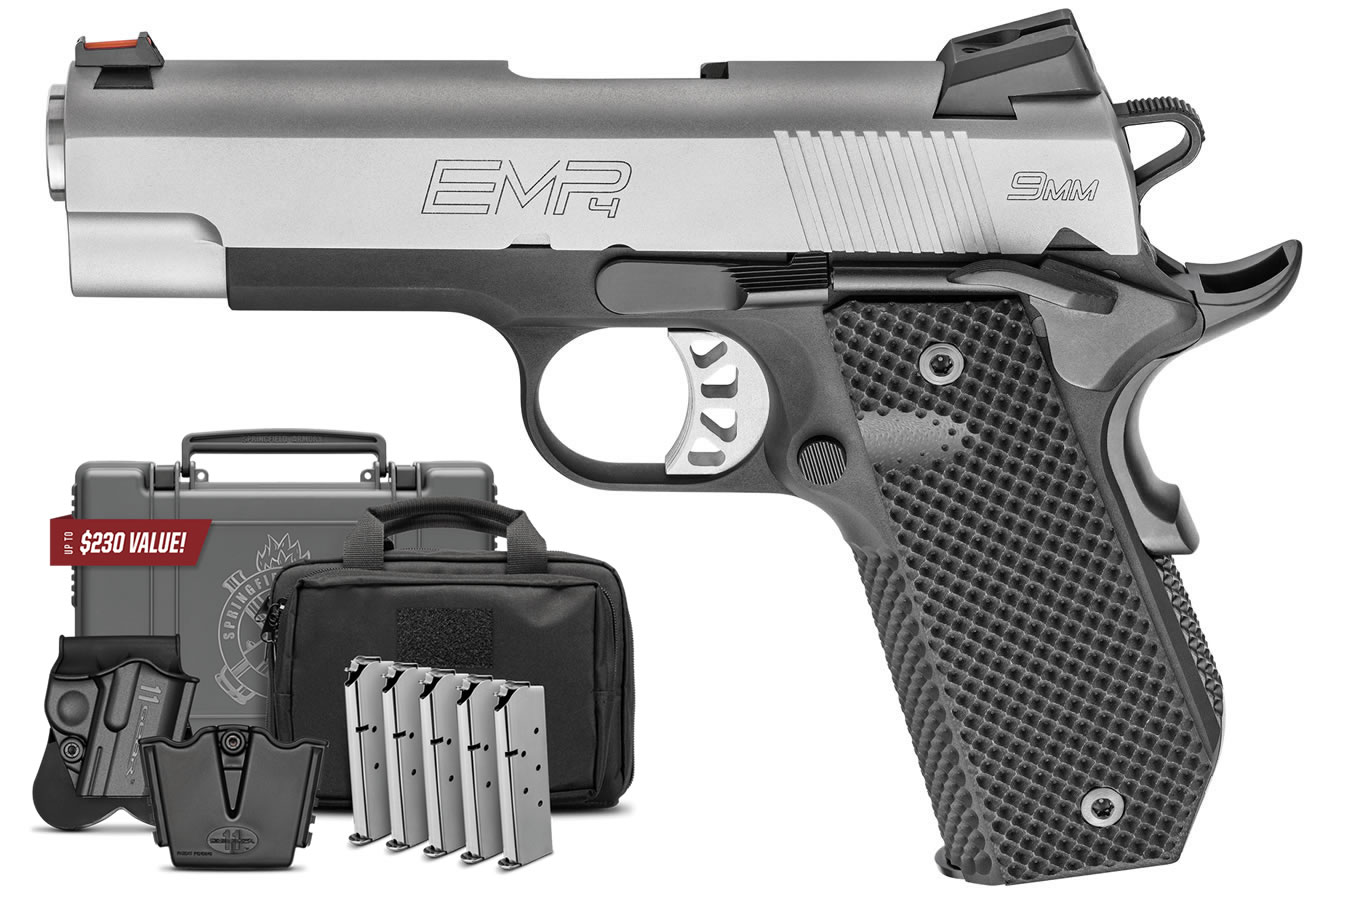 No. 6 Best Selling: SPRINGFIELD 1911-A1 EMP 9MM 4 IN BBL BLACK G10 GRIPS SS SLIDE GEAR UP PACKAGE